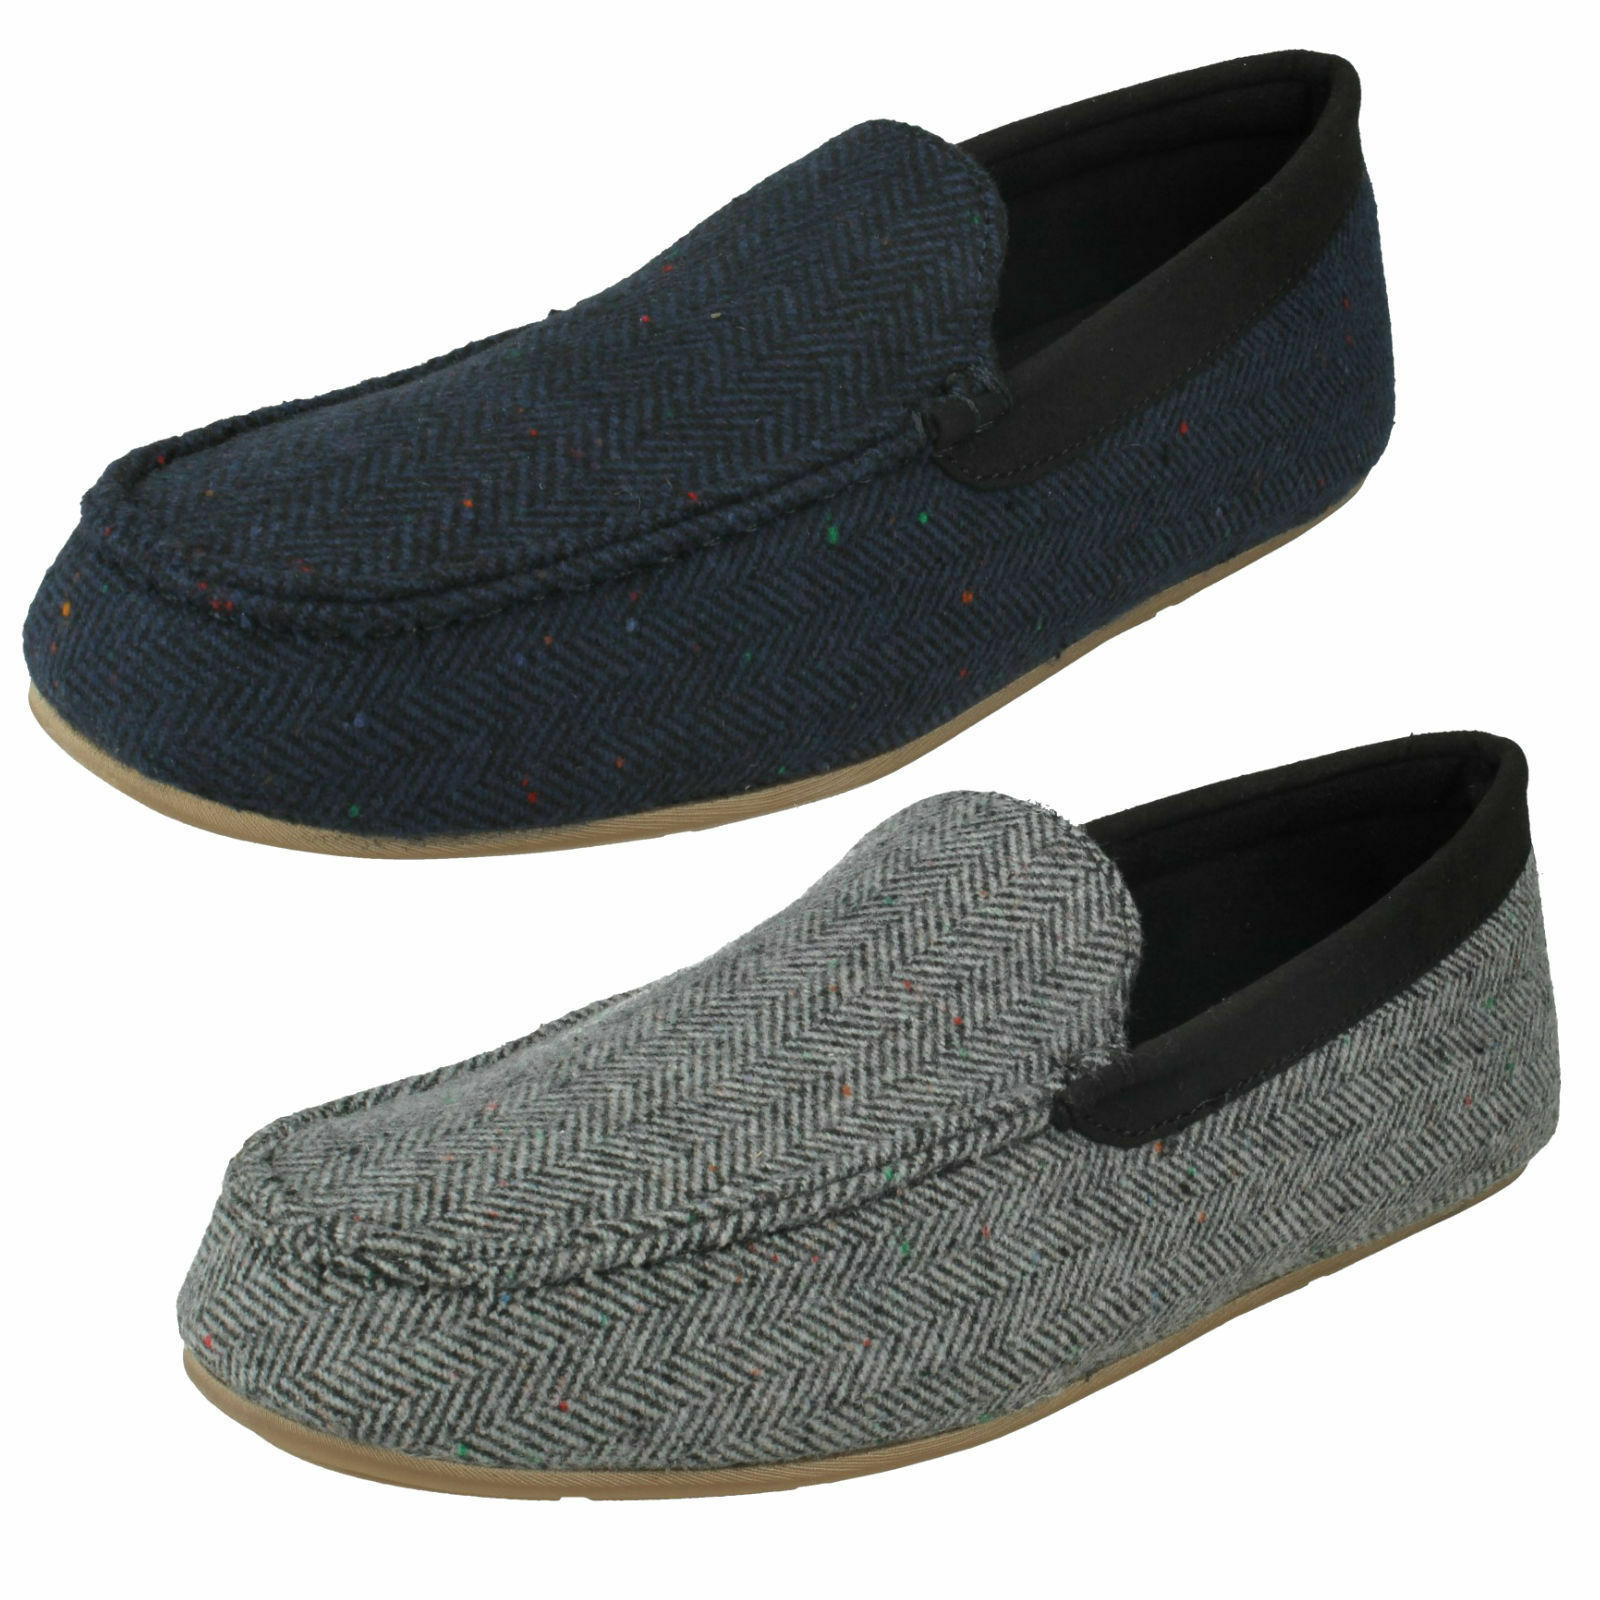 Mens Clarks Moccasin Casual Lounge Winter Slippers 'Interior Cheer'